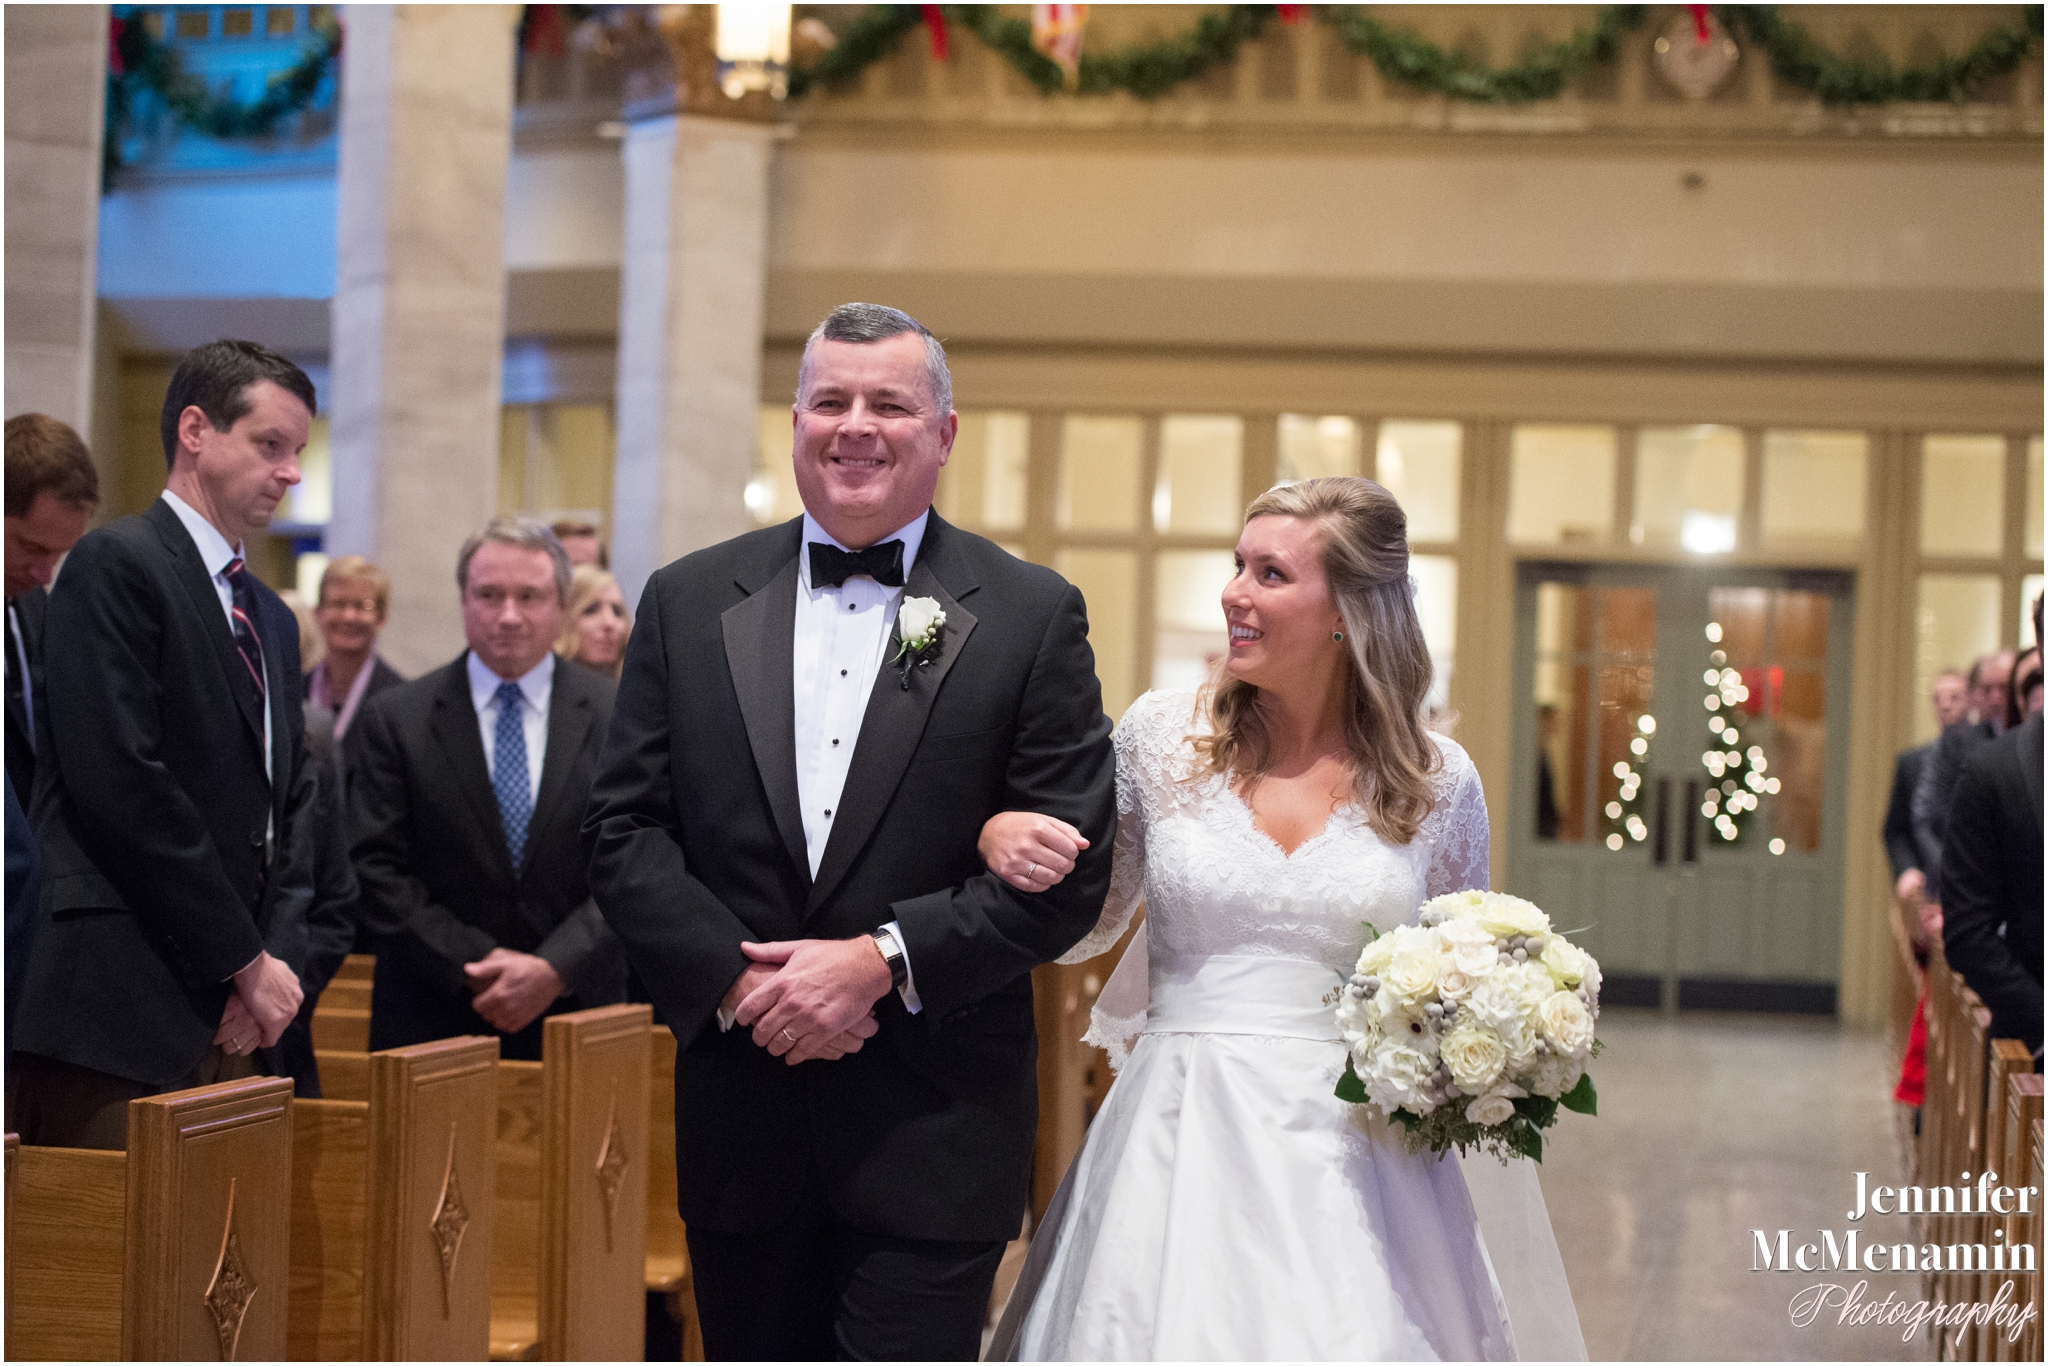 0040_RyanClemmens_01149-0302_JenniferMcMenaminPhotography_Immaculate-Conception-Church_The-Cloisters_Baltimore-wedding-photography_Baltimore-wedding-photographer